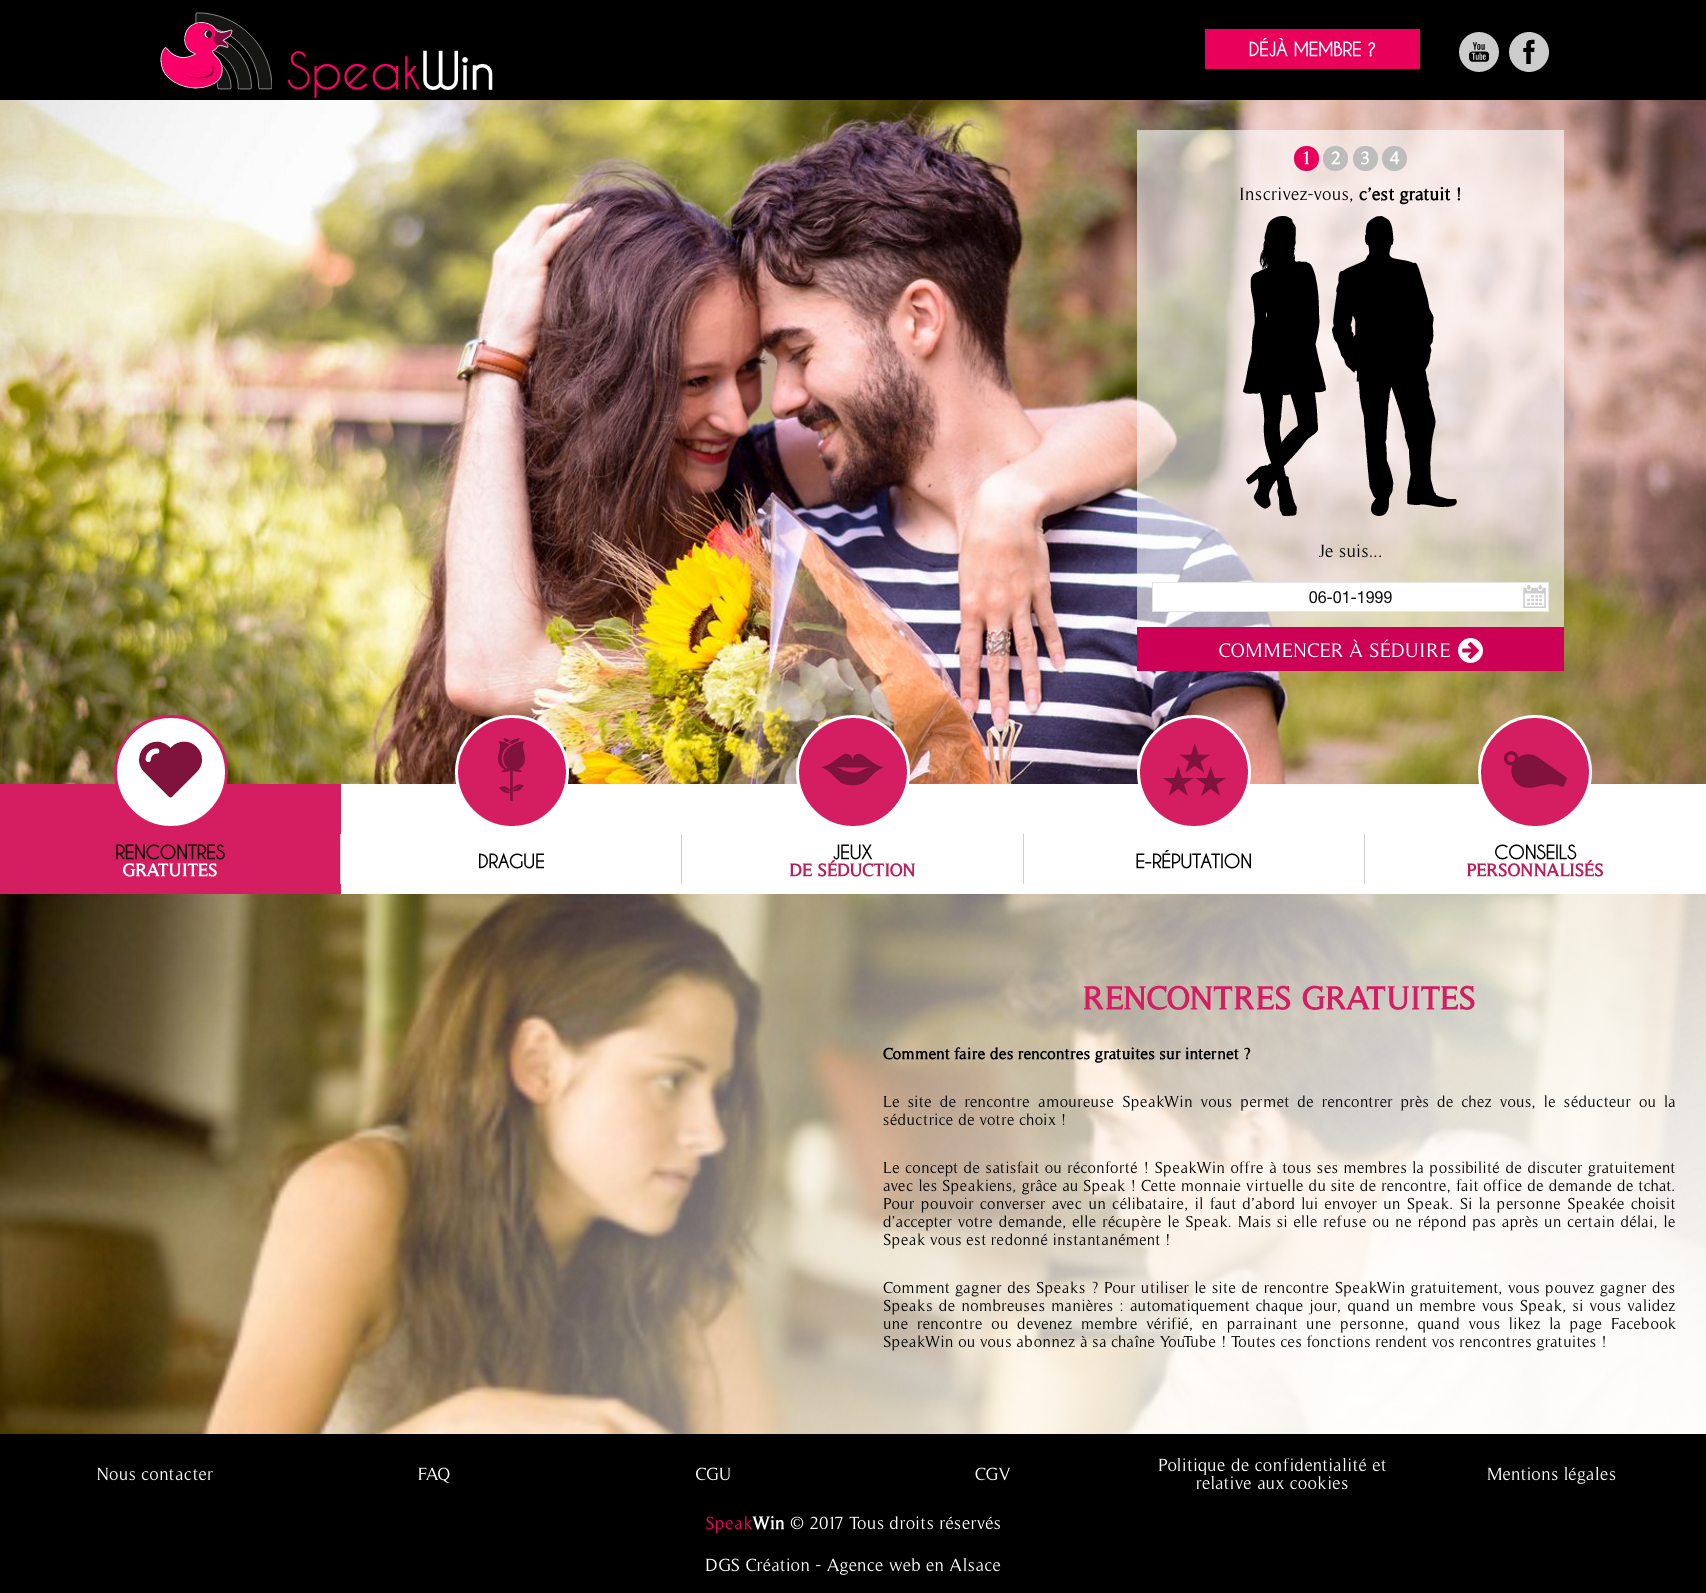 kundli match making software free download full version